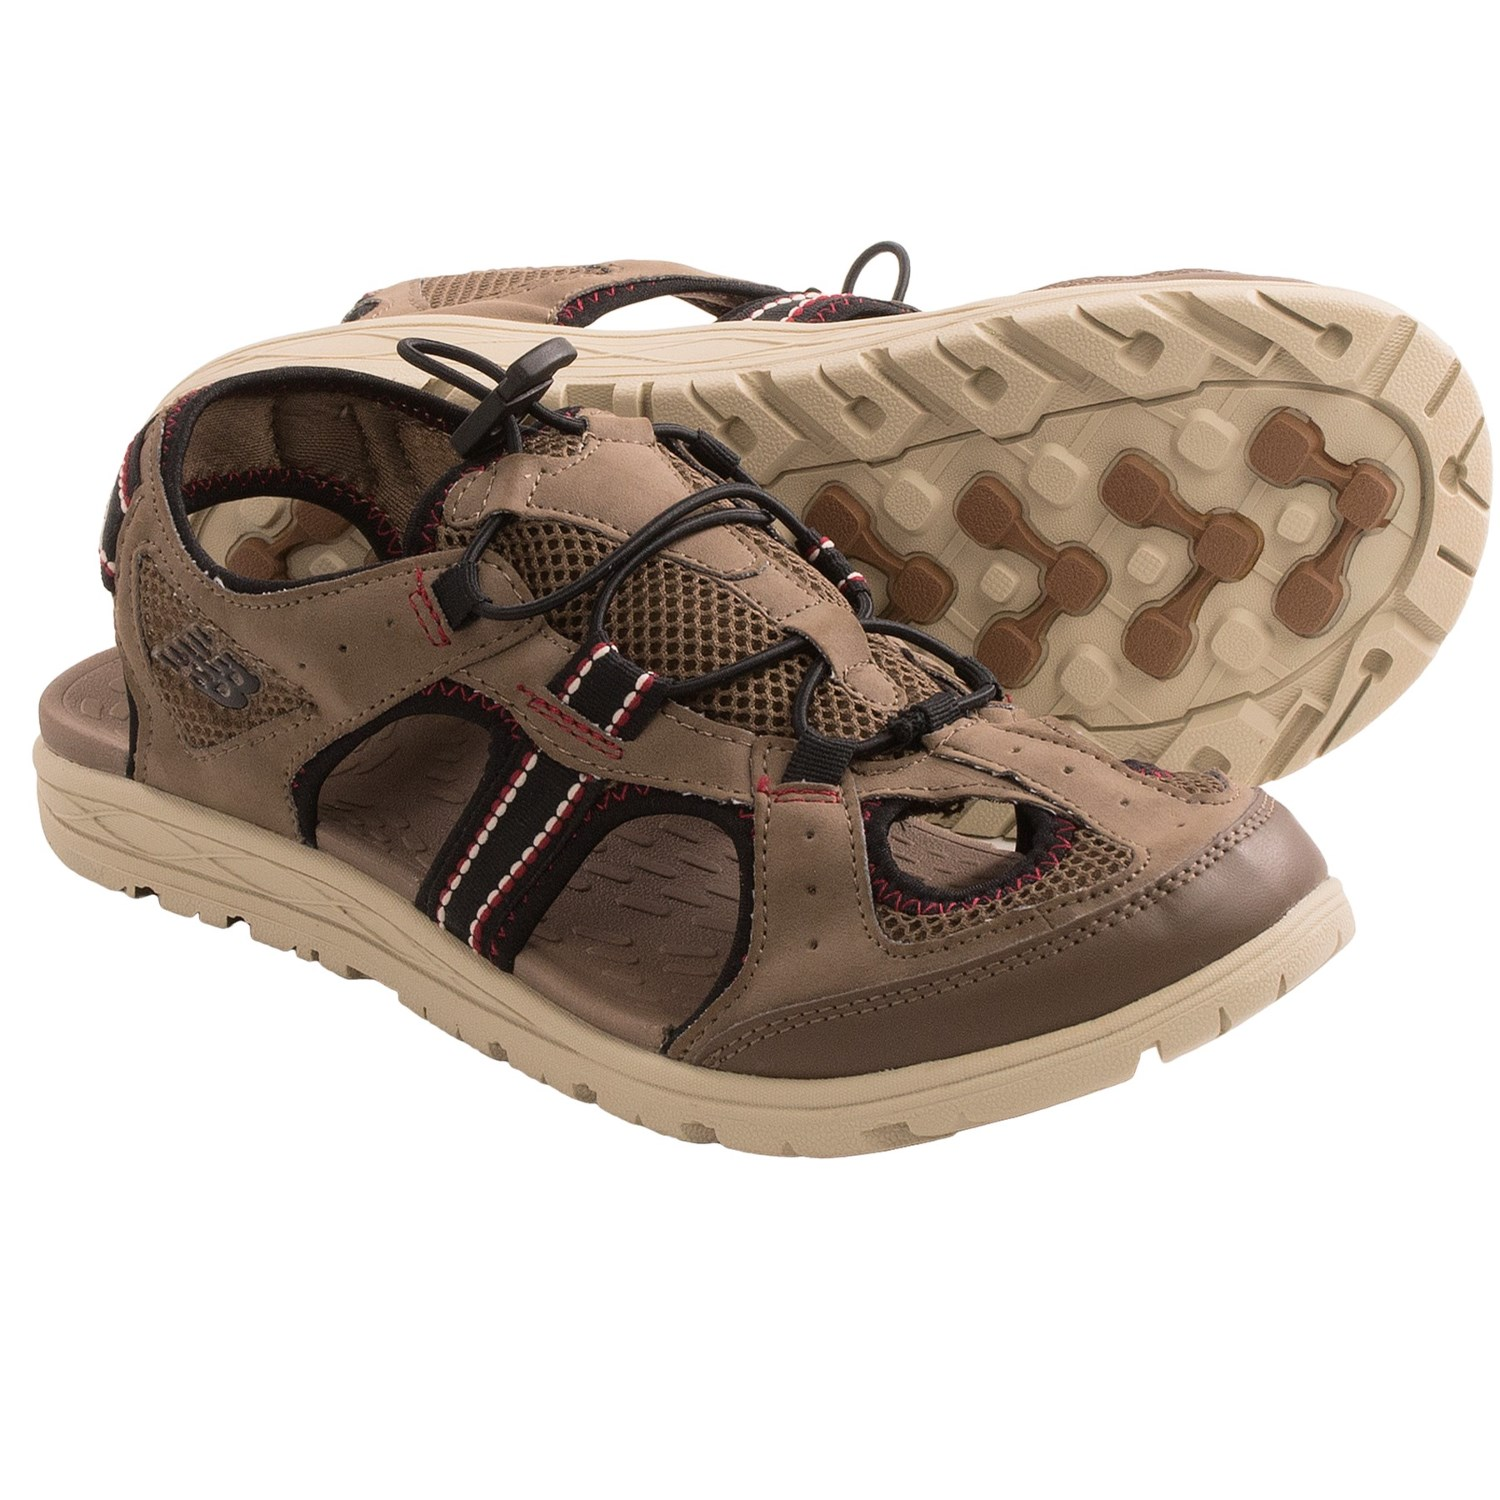 NewChic offers you gladiator sandals, black sandals, wedge sandals, leather sandals and more other sandals for women at a wholesale price. We uses cookies (and similar techniques) to provide you with better products and services.